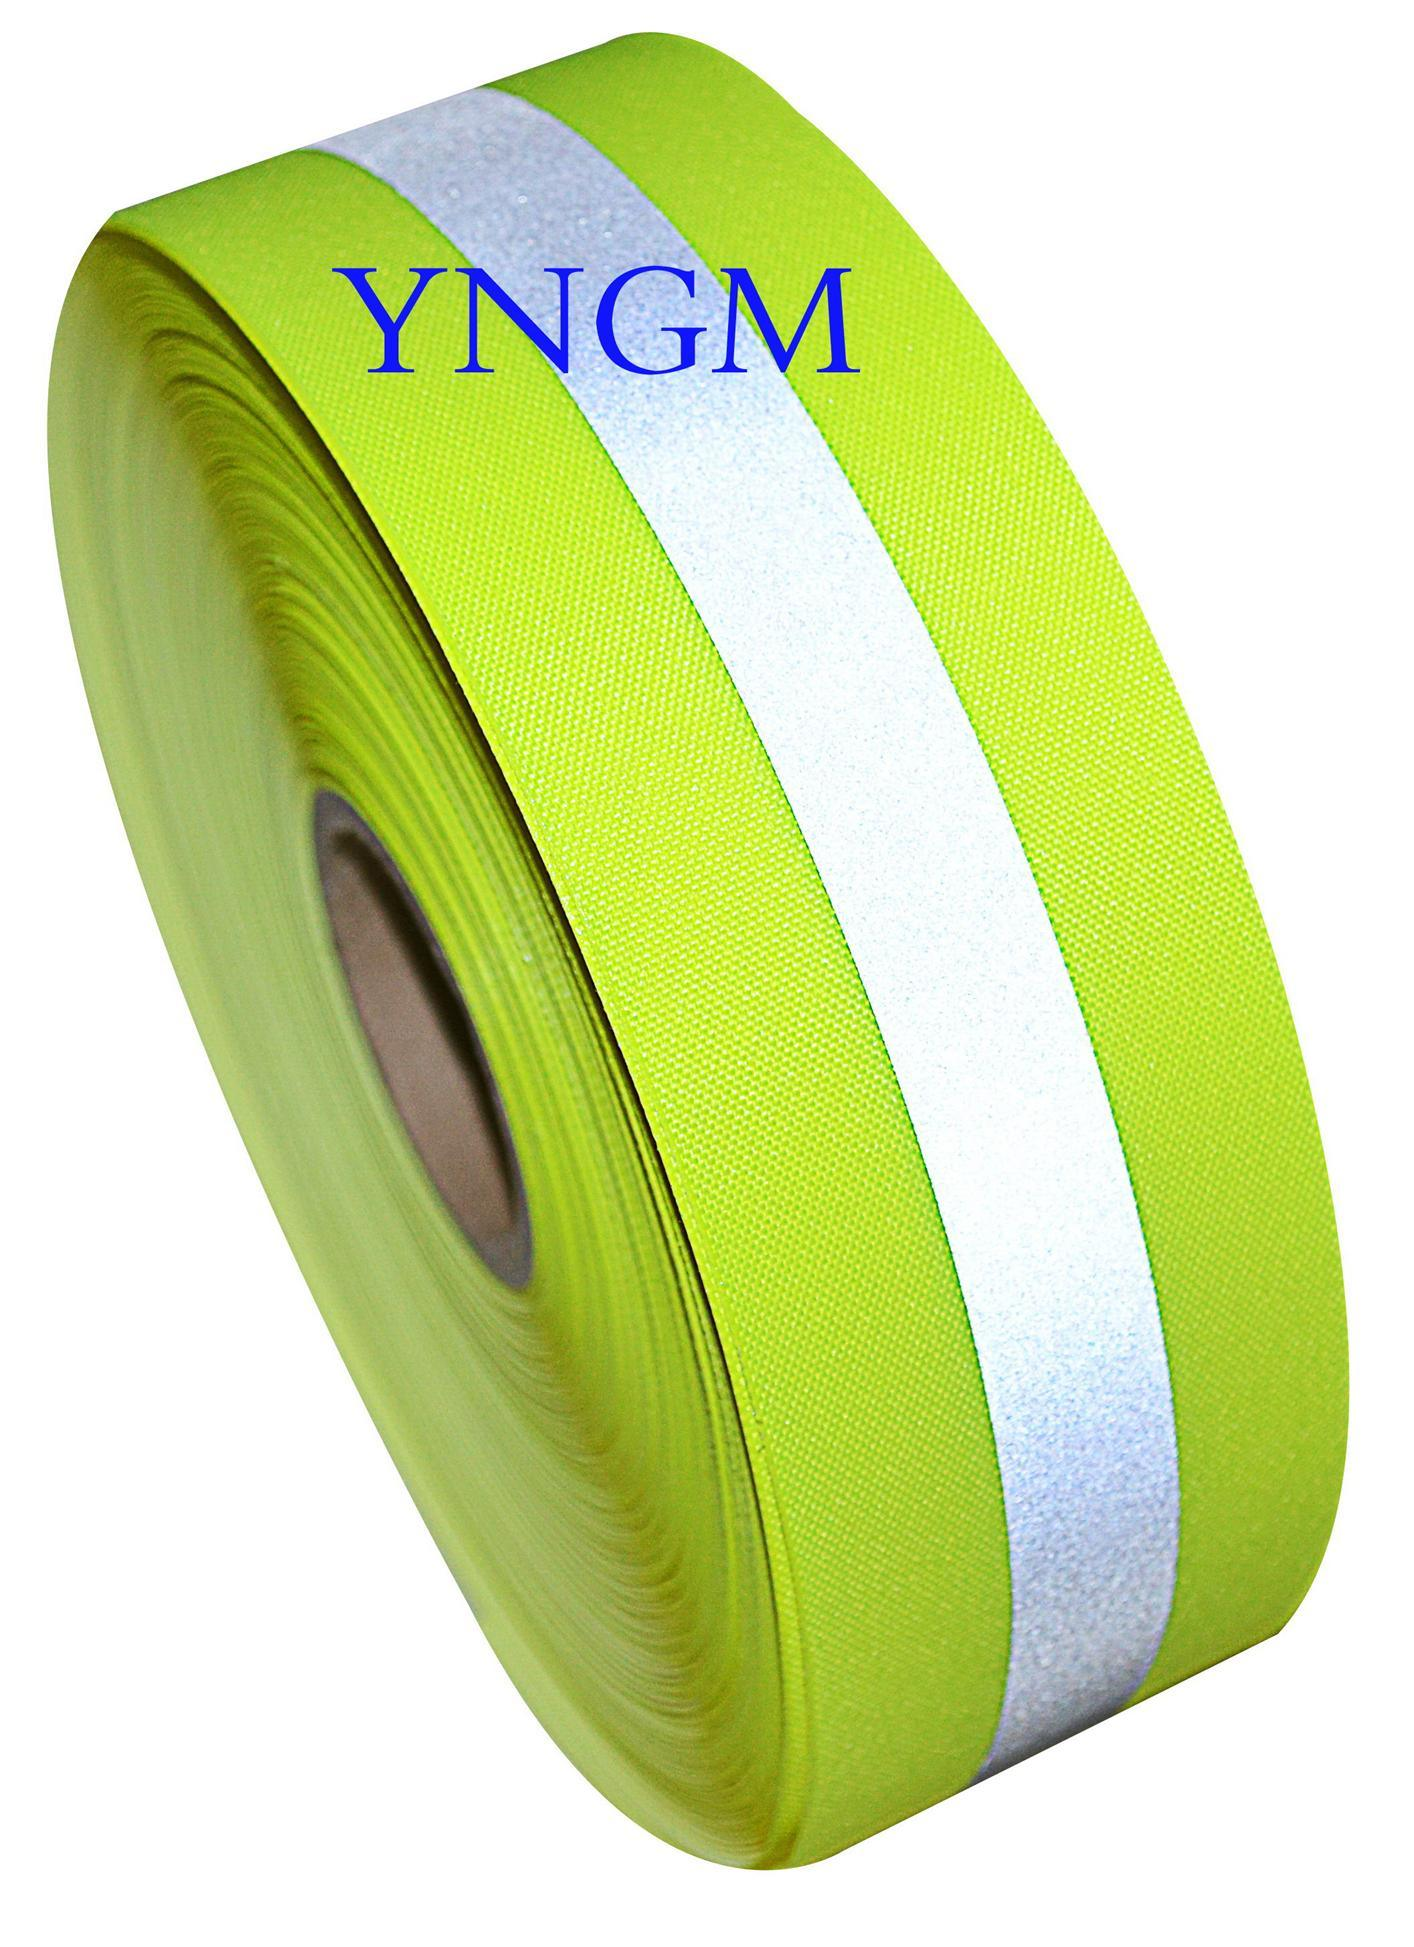 Reflective PVC Tape, Reflective Material for Safety Wear/Vest